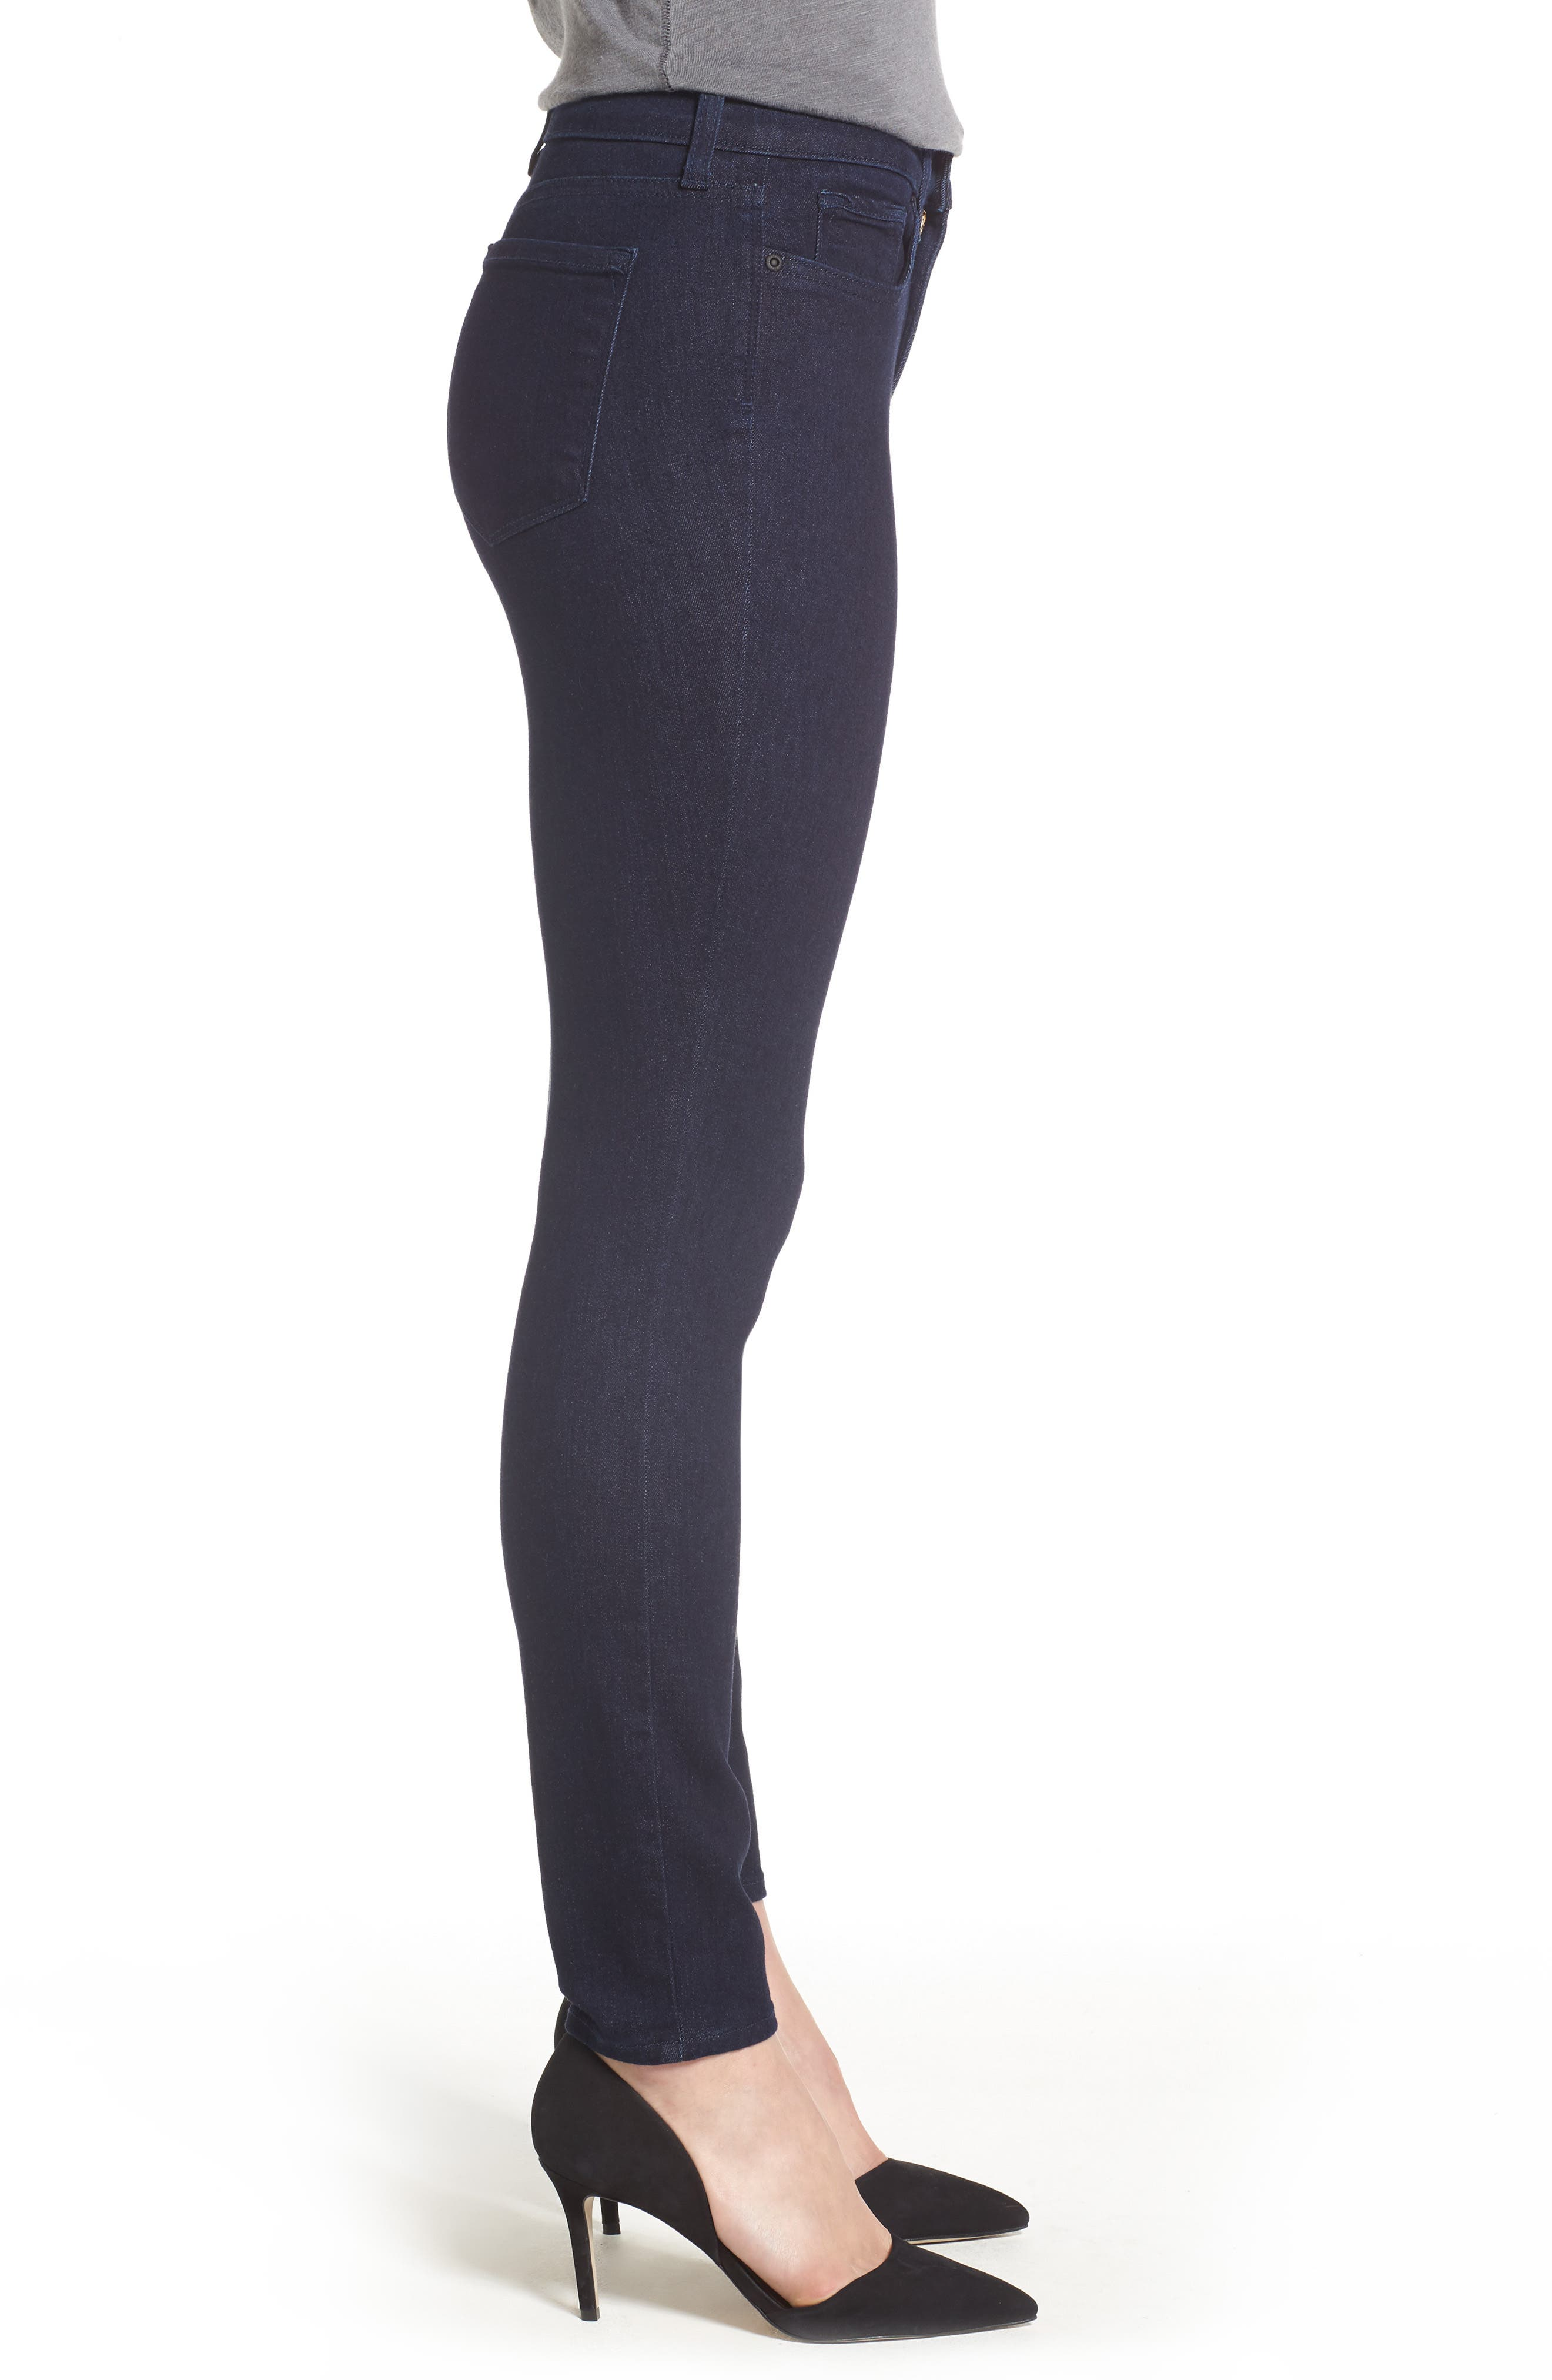 Ami High Waist Stretch Skinny Jeans,                             Alternate thumbnail 3, color,                             RINSE